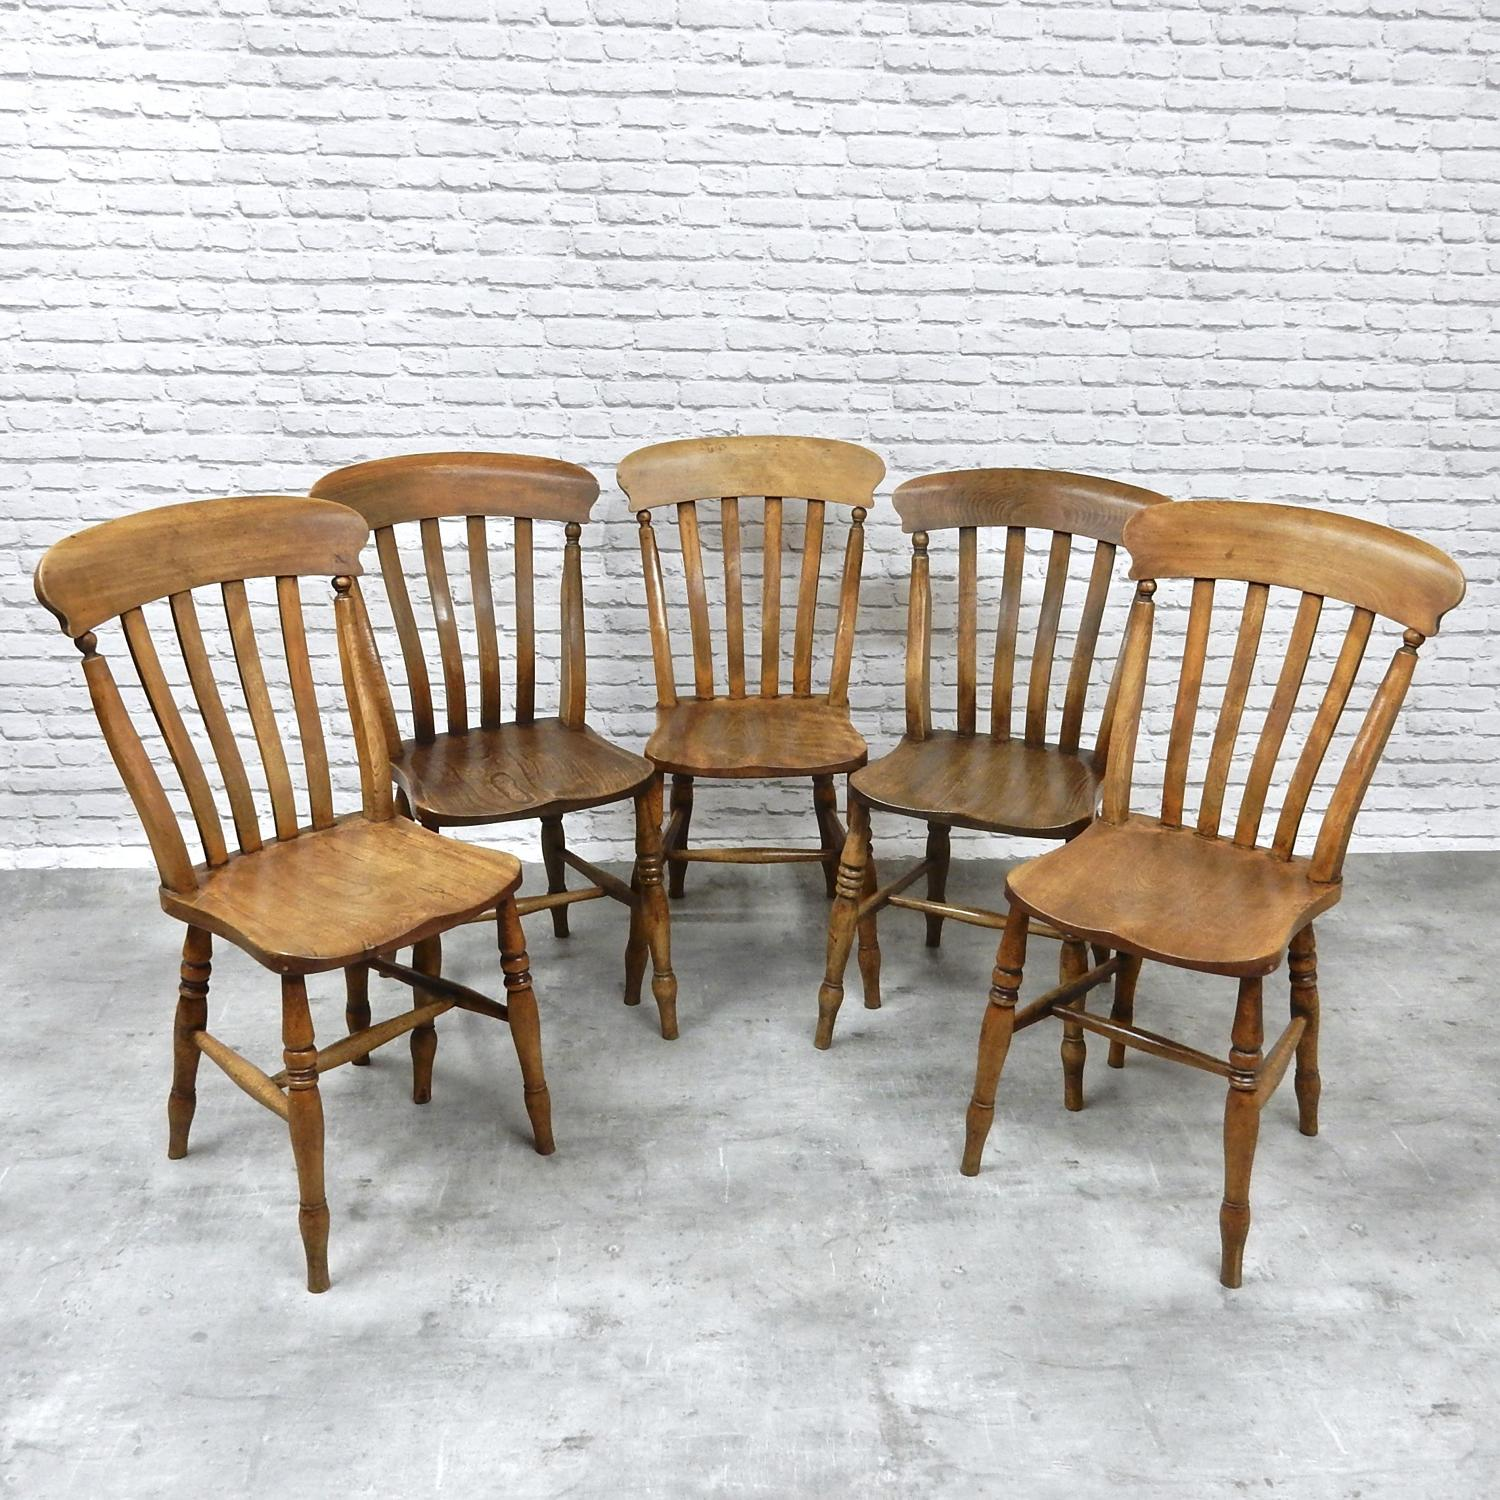 5x Windsor Lathback Chairs